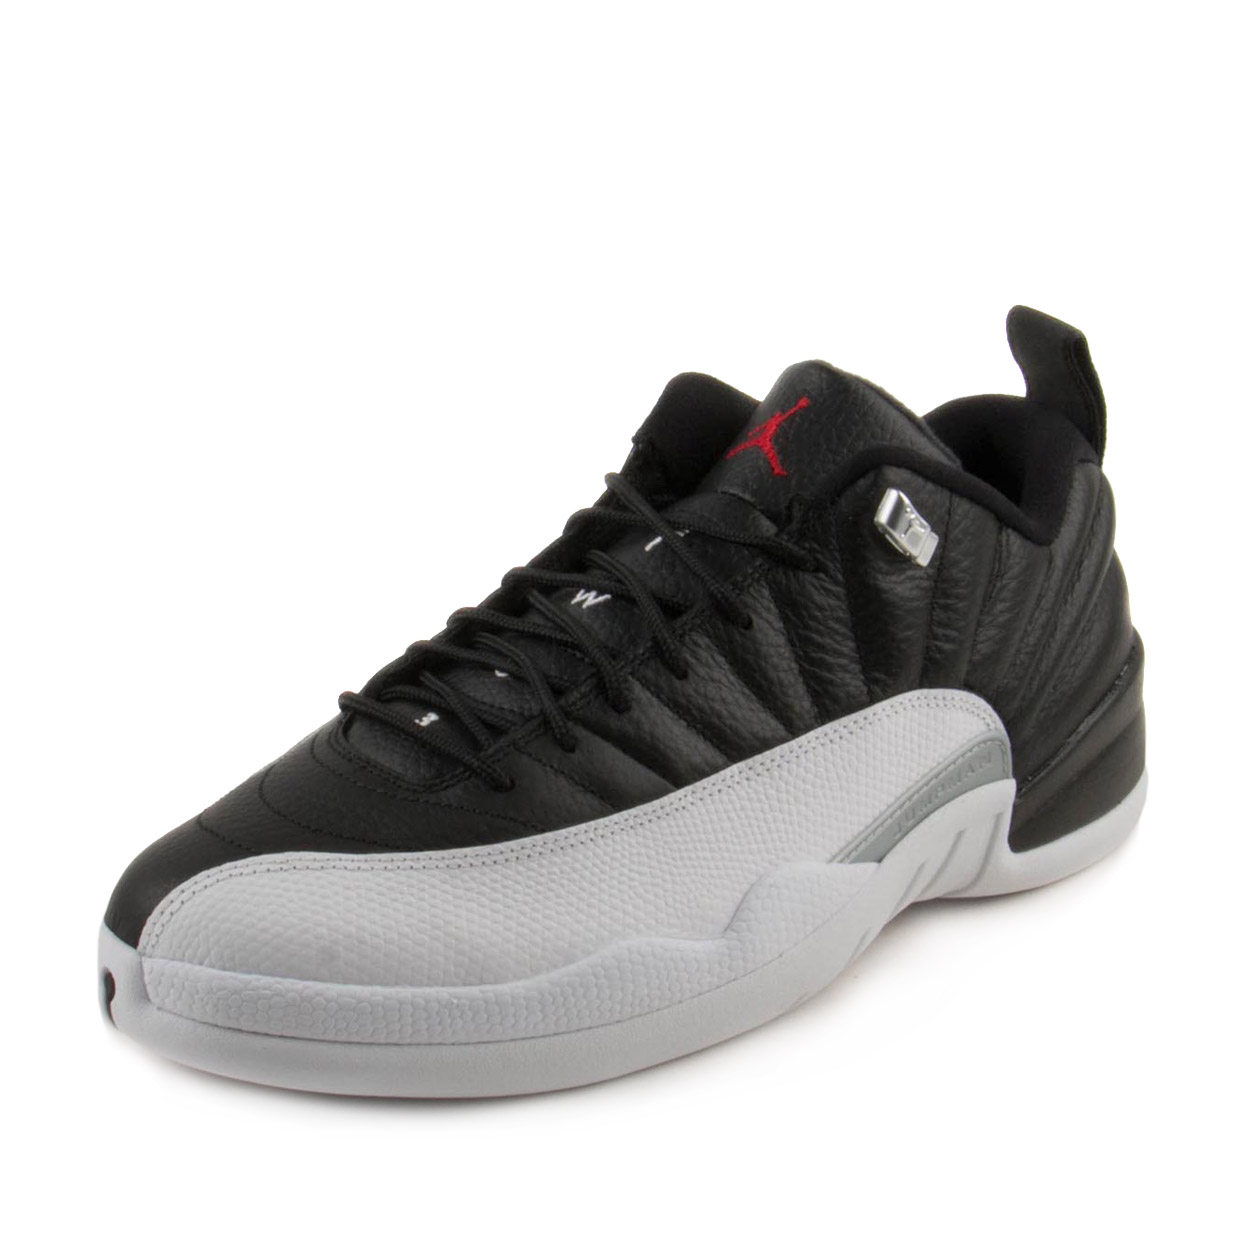 online store de596 8fb46 ... new zealand product image nike mens air jordan 12 retro low playoff  black red white 308317